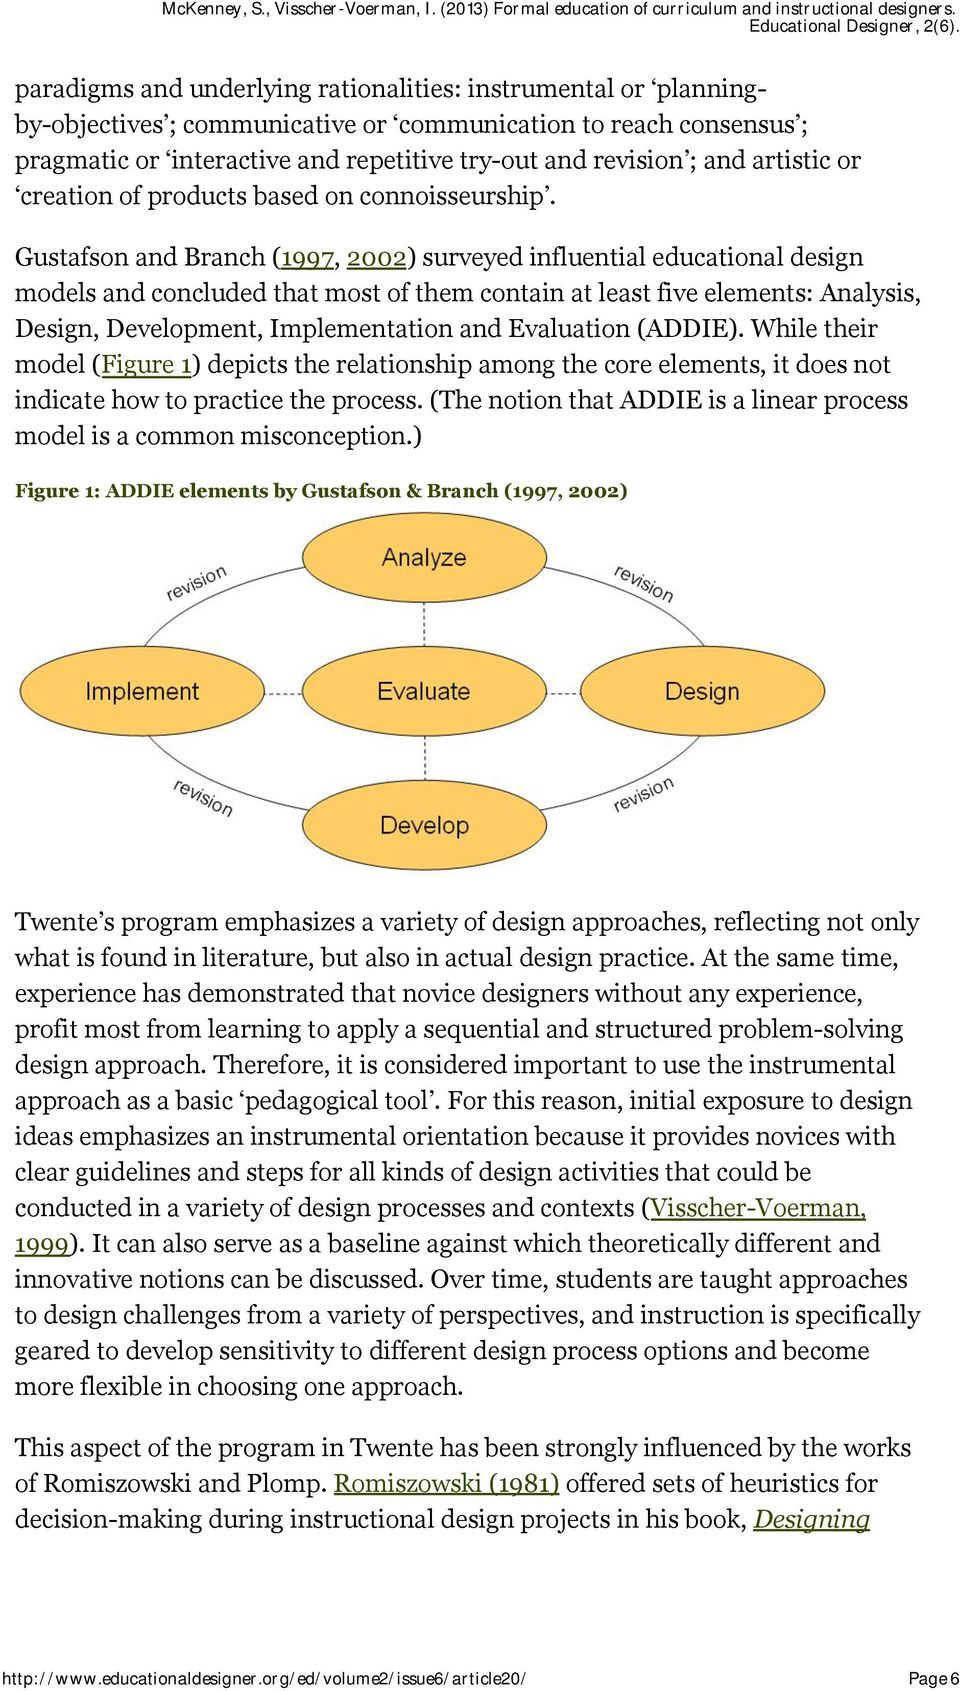 Gustafson and Branch (1997, 2002) surveyed influential educational design models and concluded that most of them contain at least five elements: Analysis, Design, Development, Implementation and